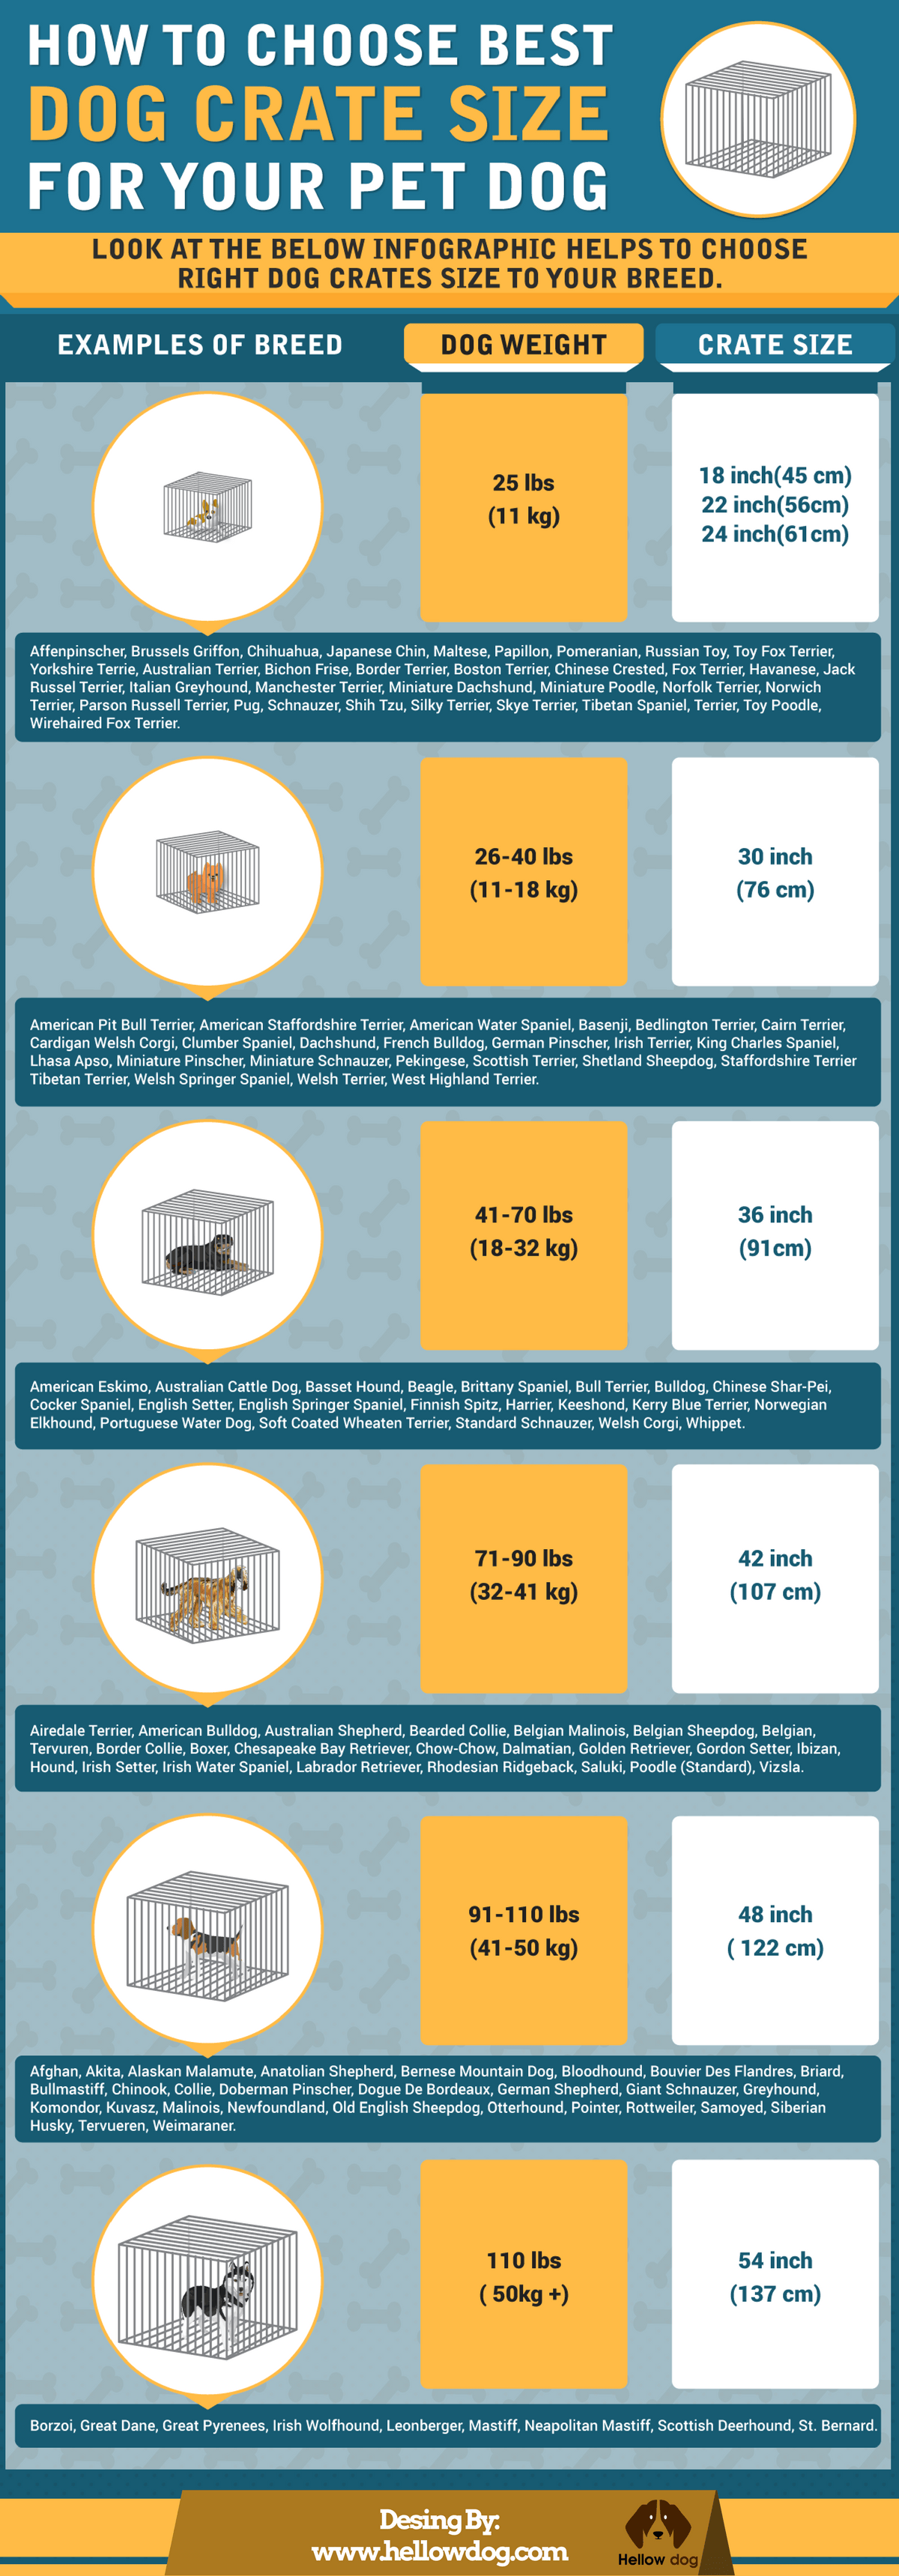 Right Crate Size For Dog